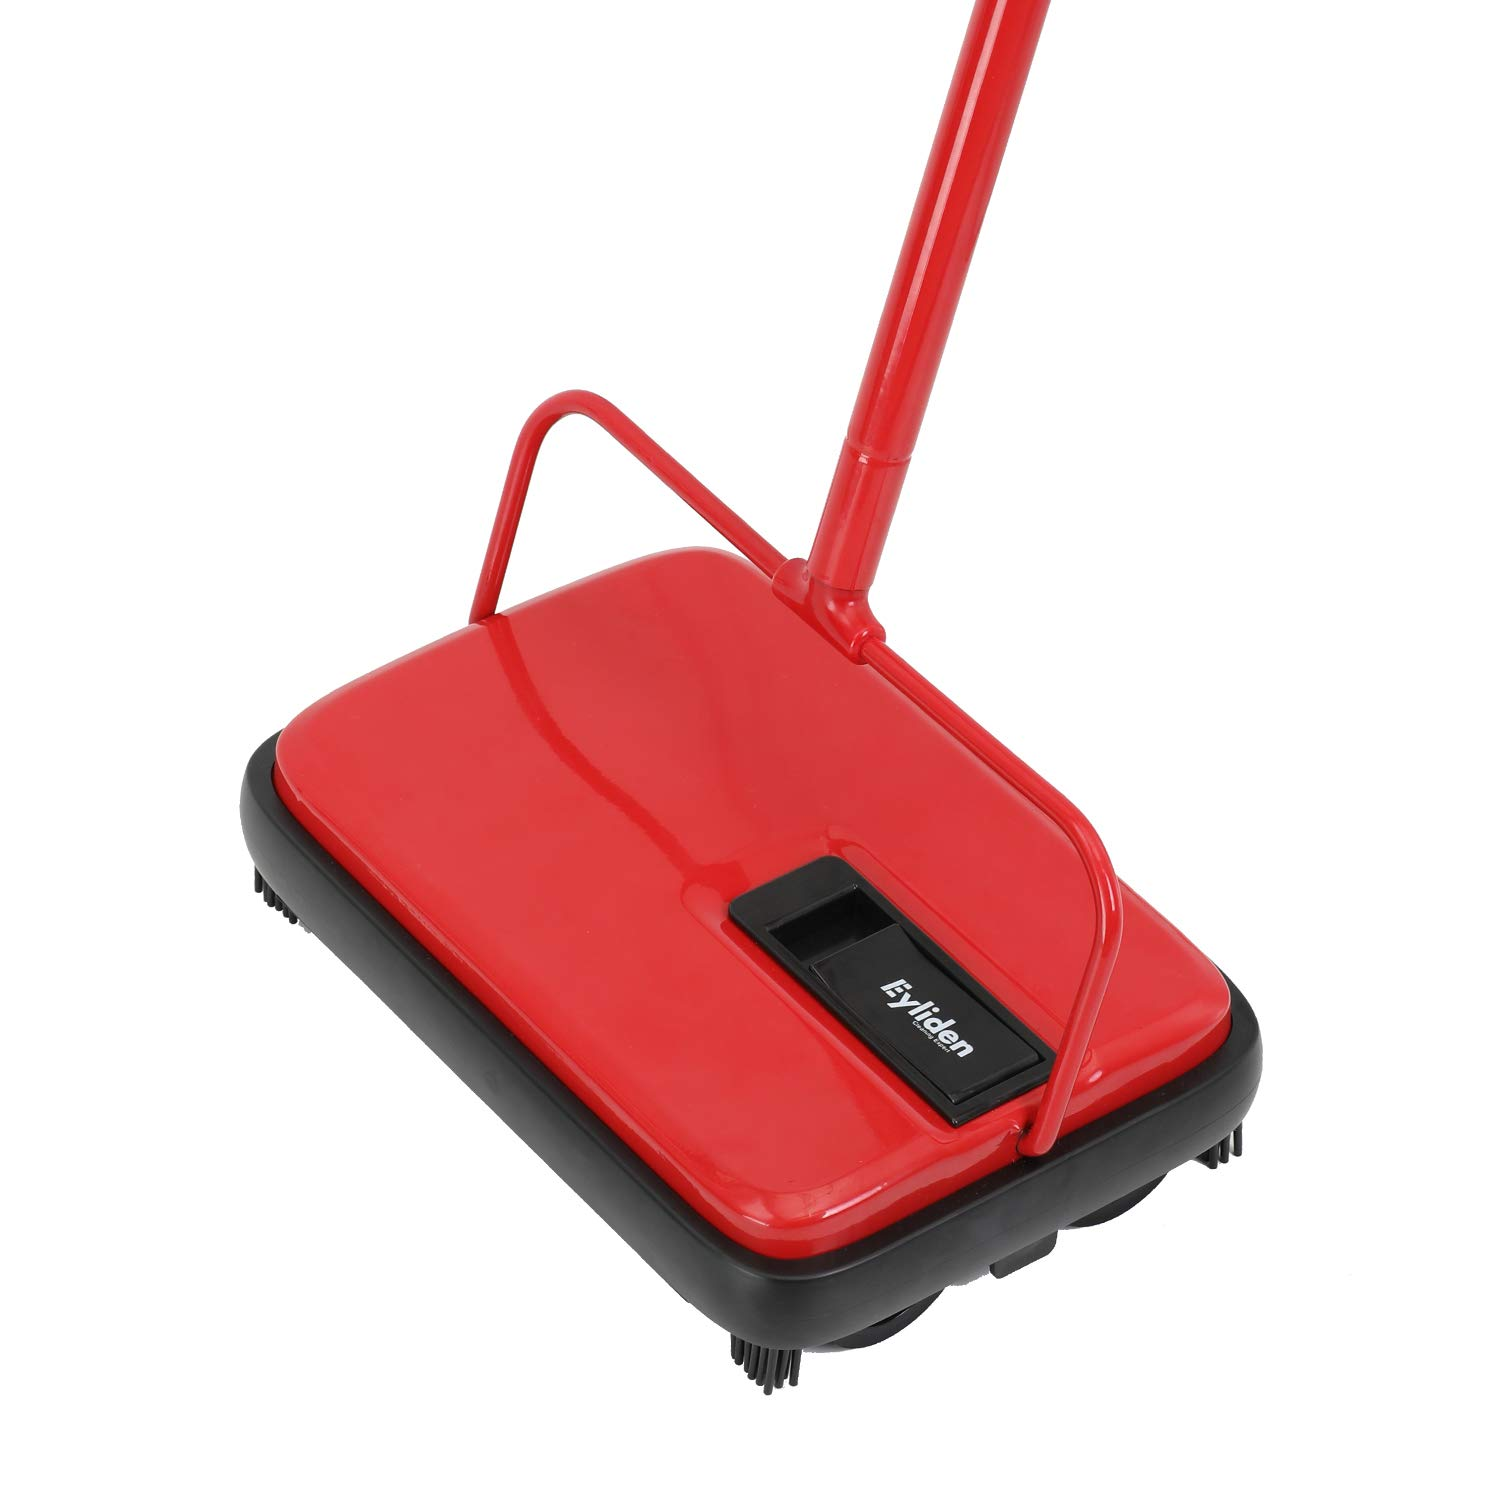 Eyliden. Carpet and Floor Red and Black Sweeper with 4 Corner Edge Brushes for Tile Carpet by Eyliden.